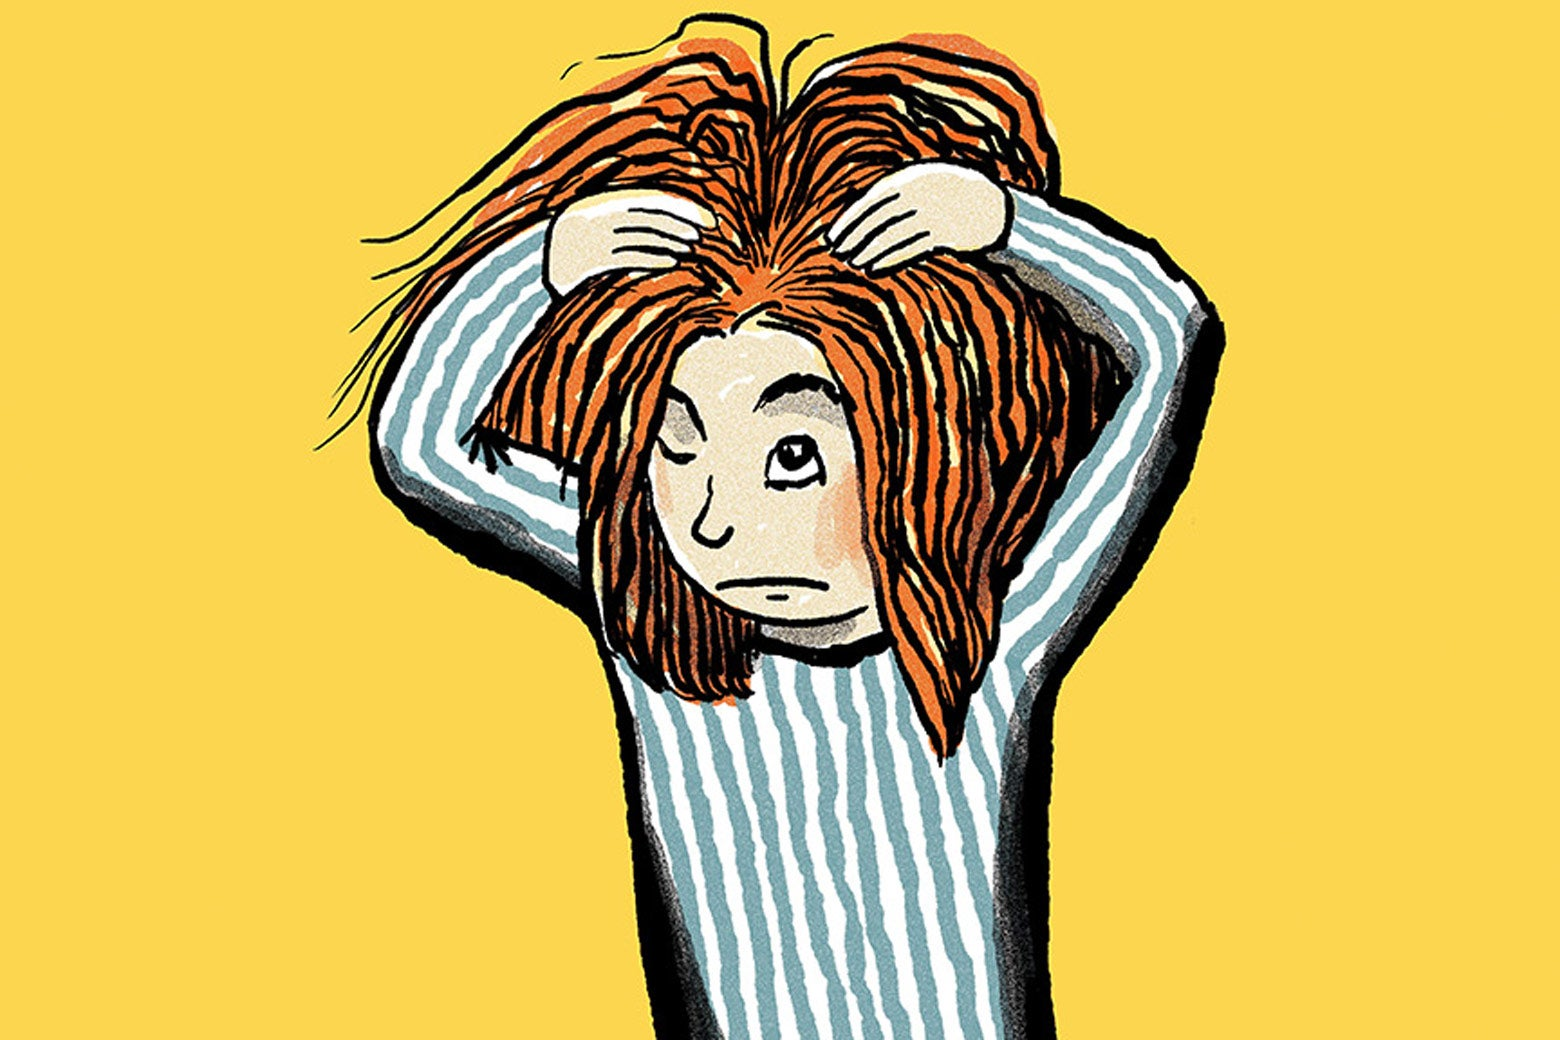 Illustration of a redheaded child itching her head.